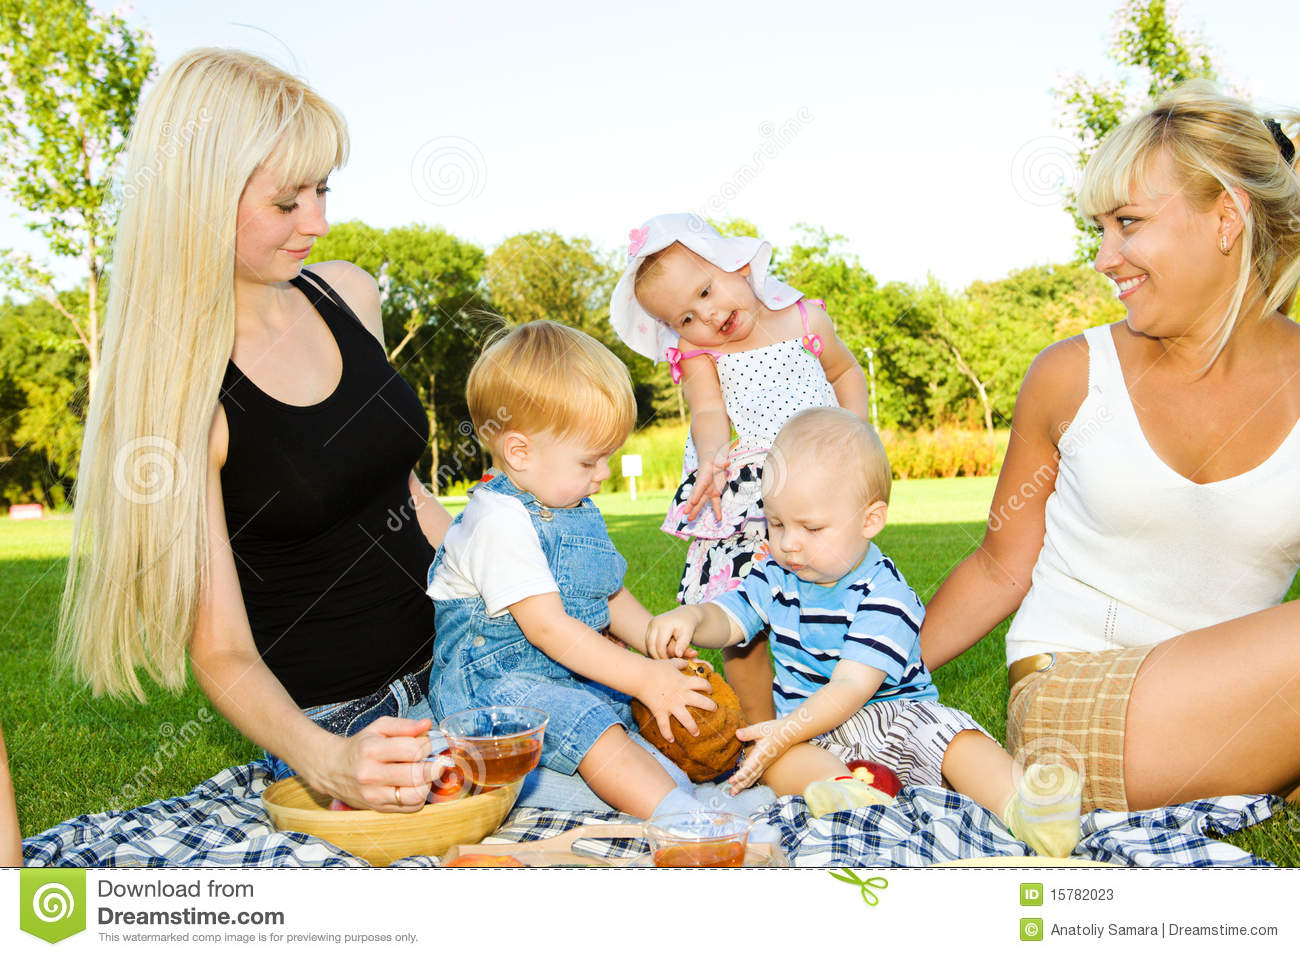 Lovely Toddler Kids Eating Cake Mother Looking At Them